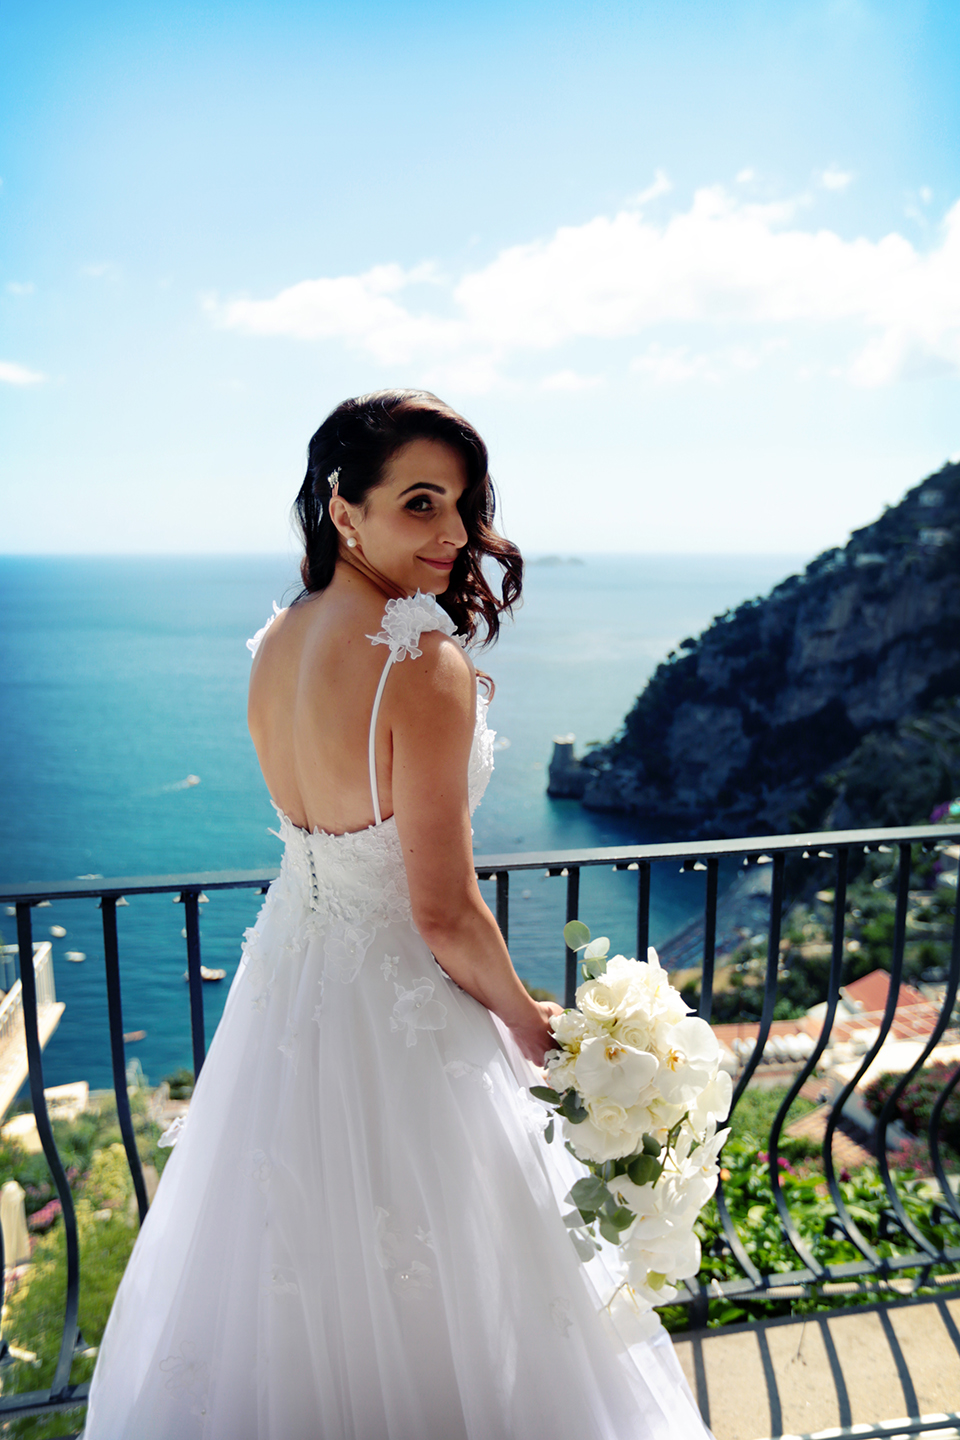 positano-weddin-photographers-italy-wedding-photographers-destination-wedding-photographers-estilo-best-wedding-photographers-in-the-world-casper-bosman-wedding-gown-wedding-style-stylish-modern-wedding-photography-024.jpg